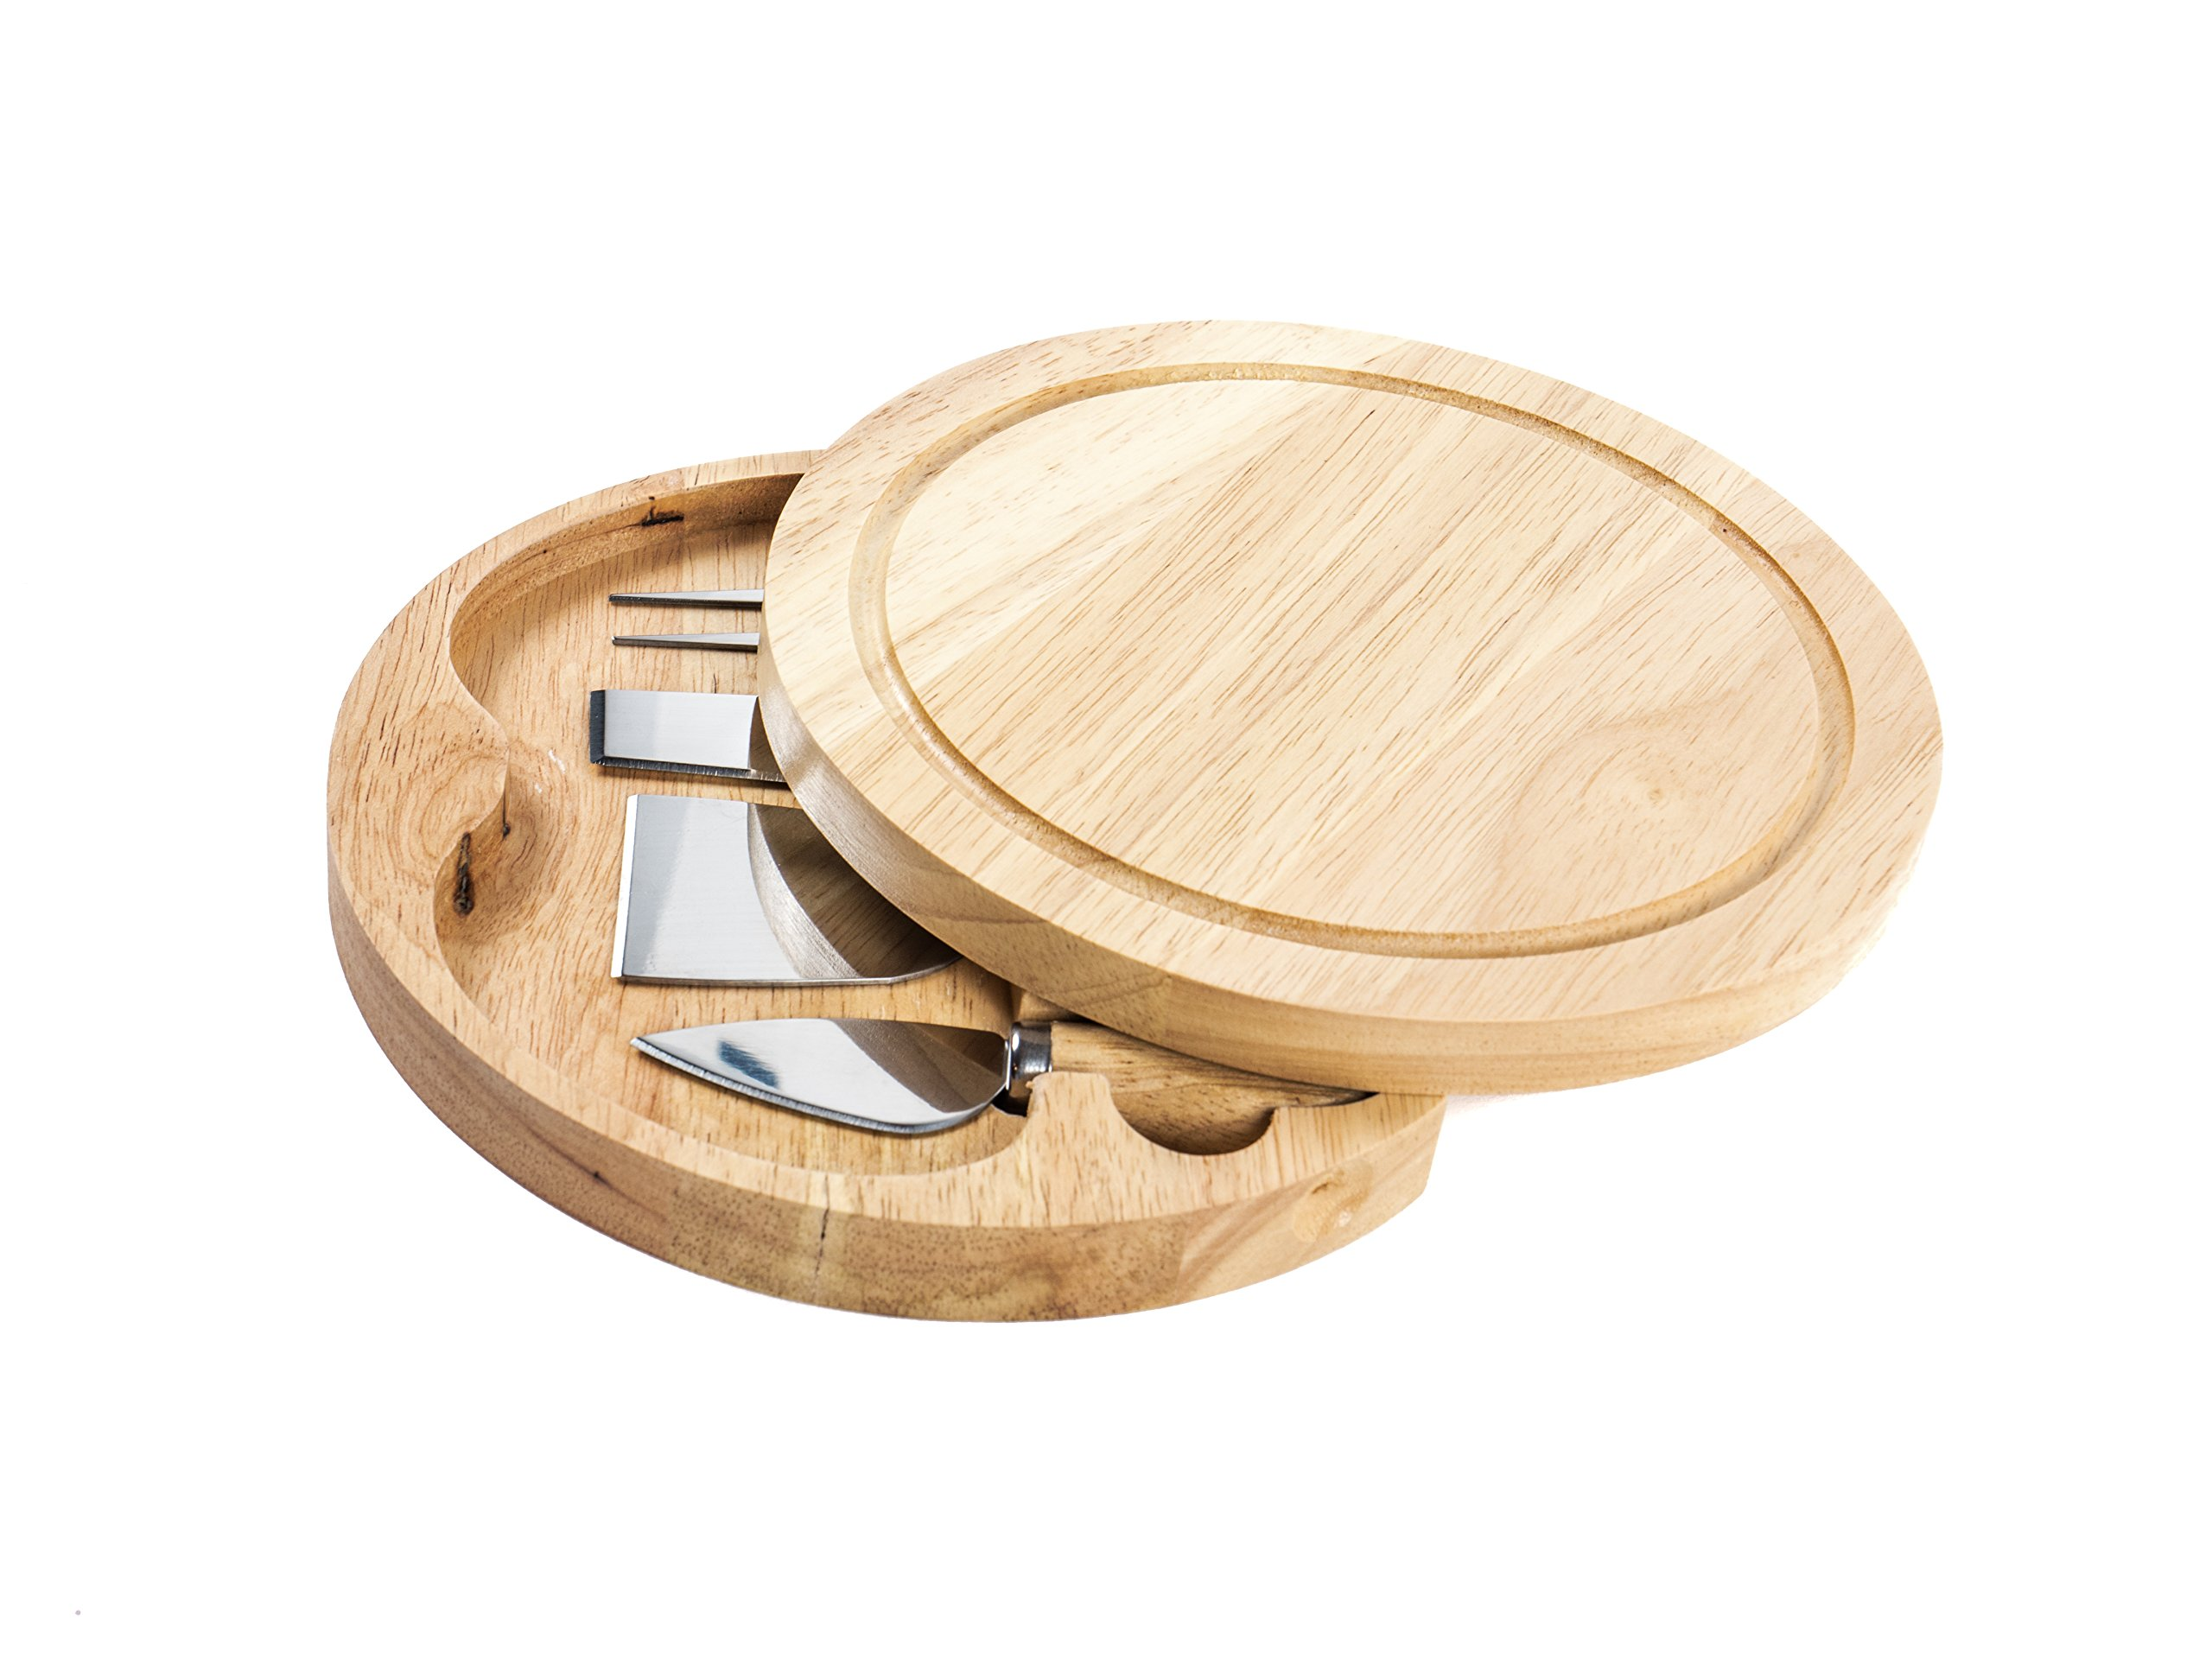 Personalized | Custom Engraved Cheese Board & Knife Tool Set by Sofia's Findings (Image #4)